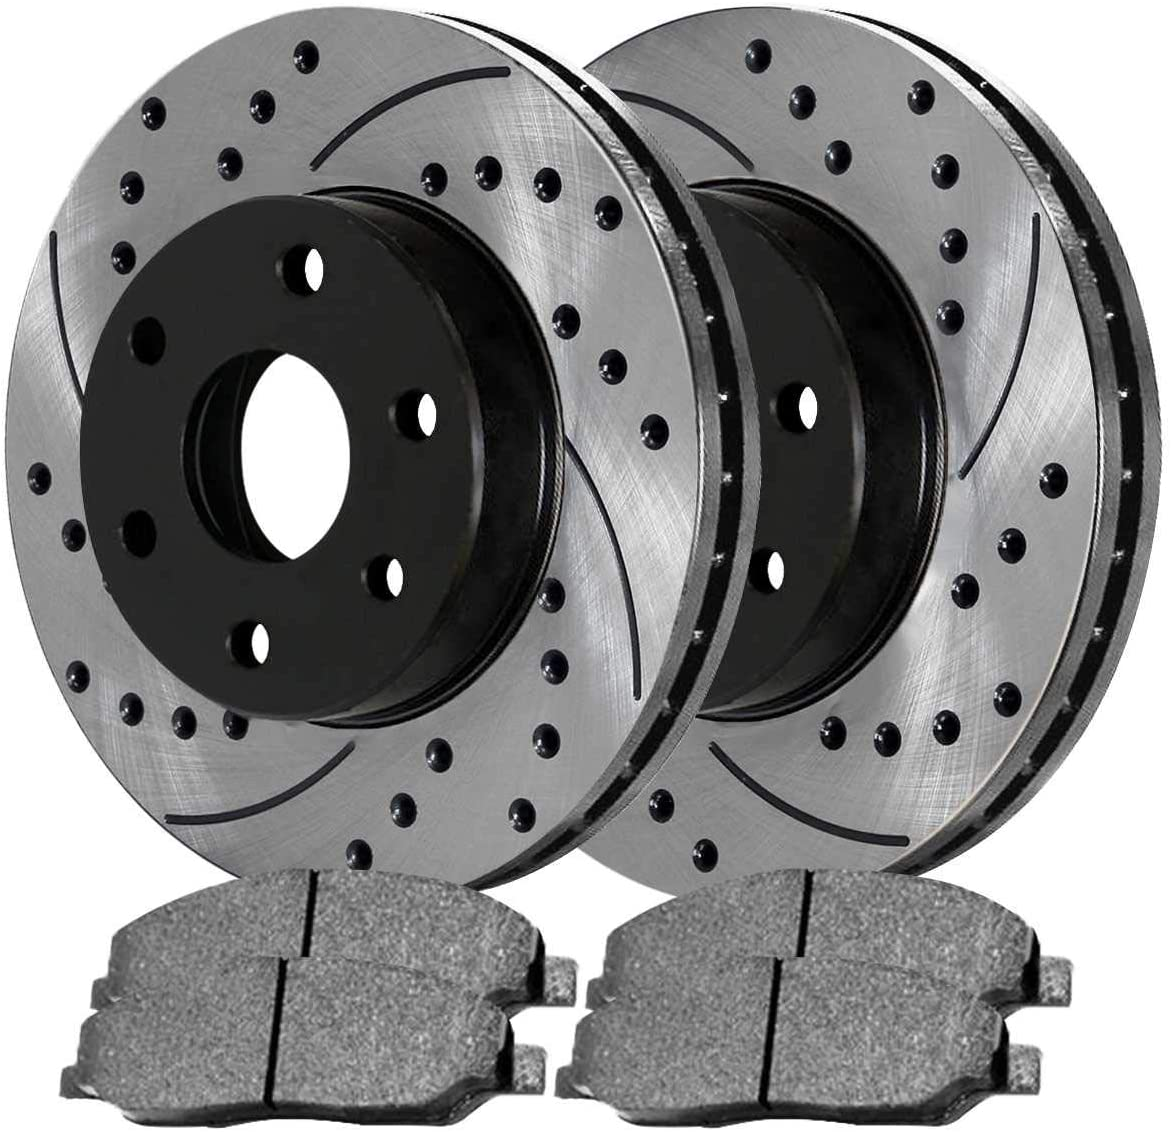 AutoShack SCD1083PR64111 Pair of 2 Front Driver and Passenger Side Drilled and Slotted Disc Brake Kit Rotors and Ceramic Pads Replacement for 2004-2006 2007 2008 Ford F-150 2006-2008 Lincoln Mark LT